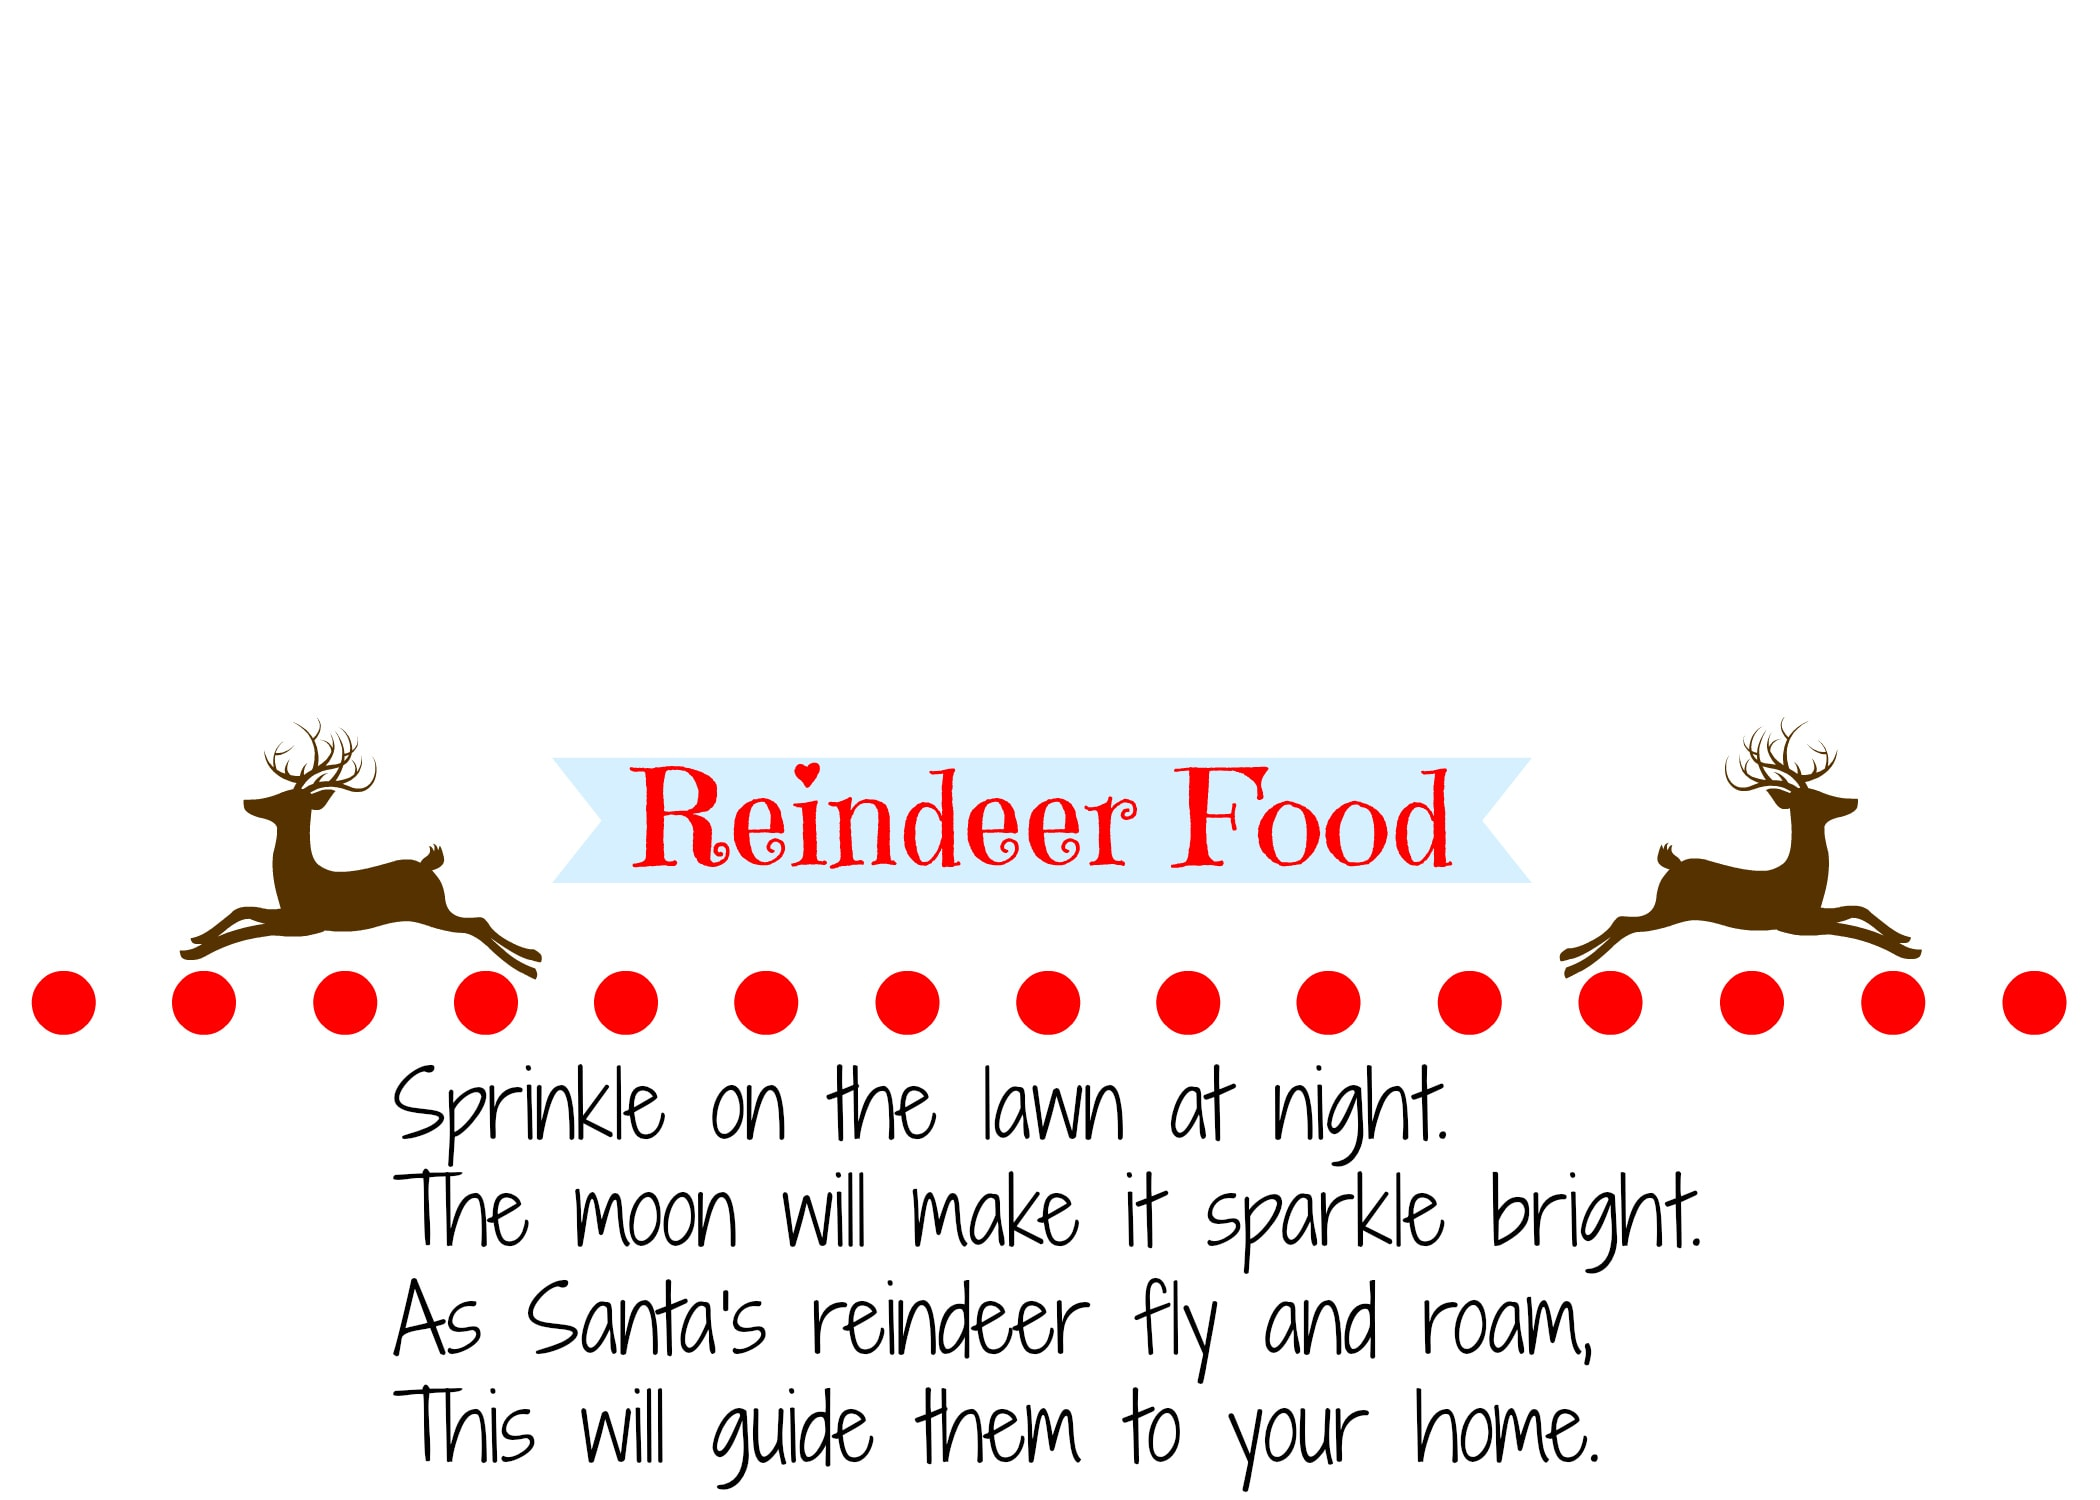 Homemade Reindeer Food Recipe